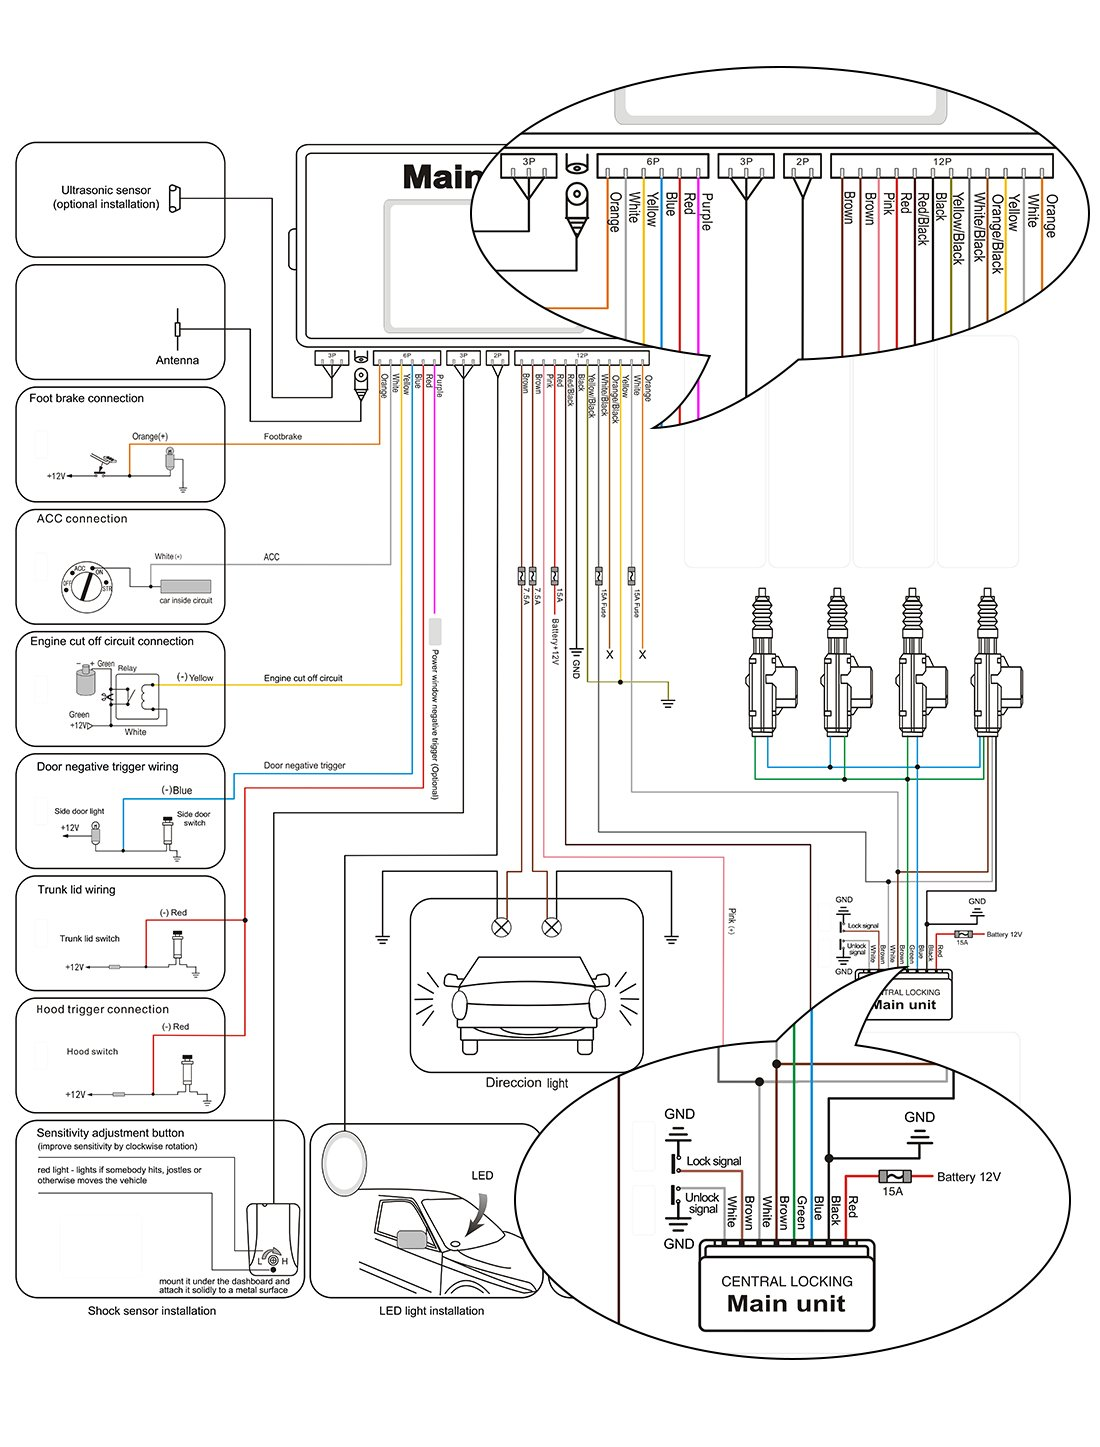 Vehicle Alarm System Diagram | Wiring Diagram